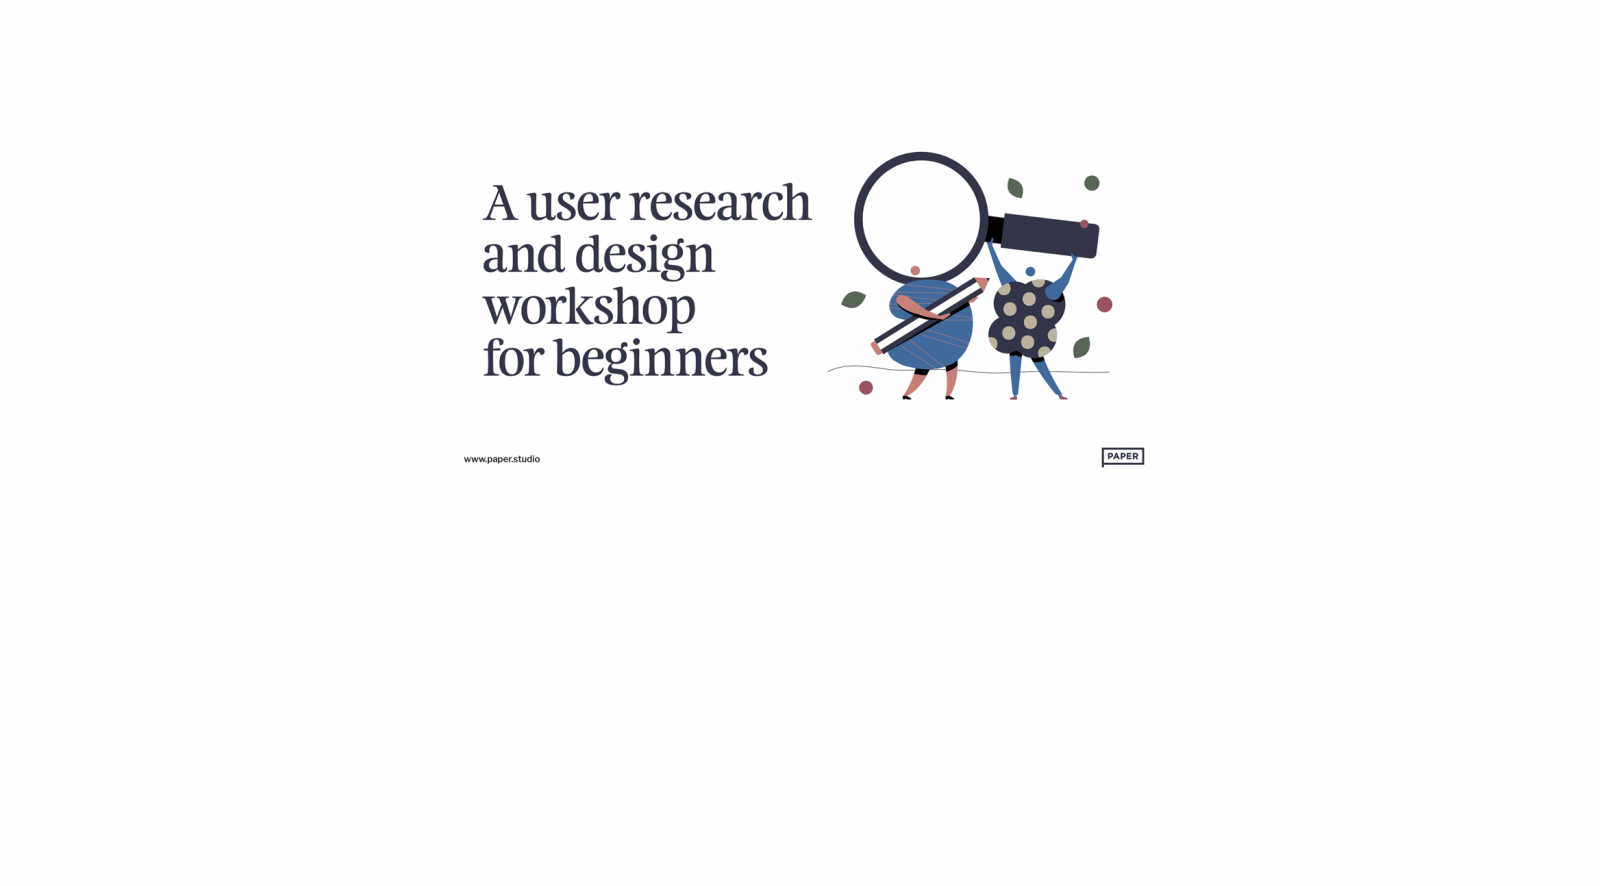 User research and design workshop for beginners - Paper header image